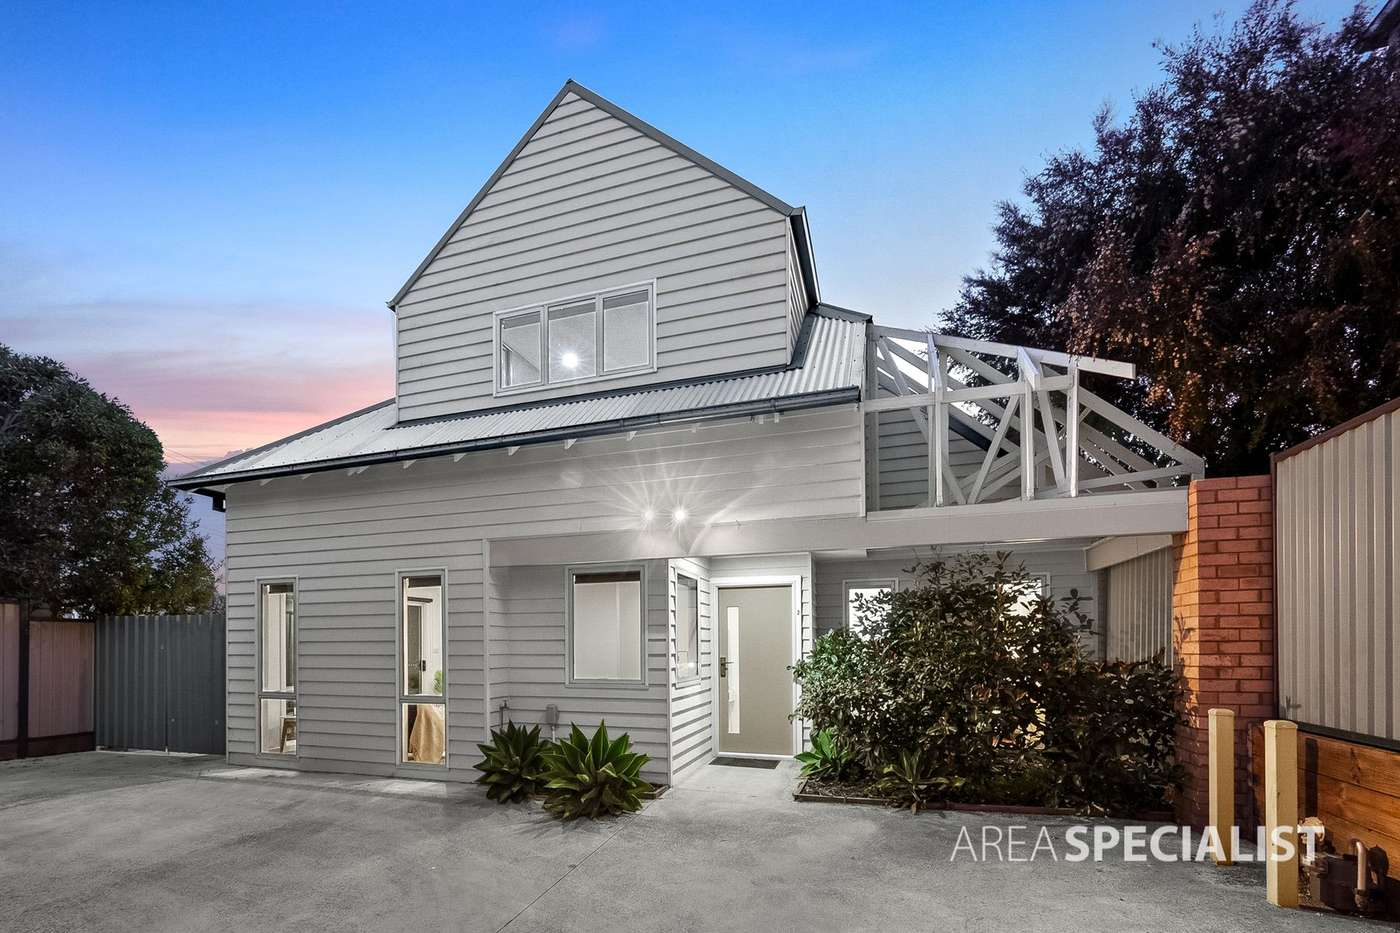 Main view of Homely townhouse listing, 2/379 Reynard Street, Pascoe Vale South, VIC 3044